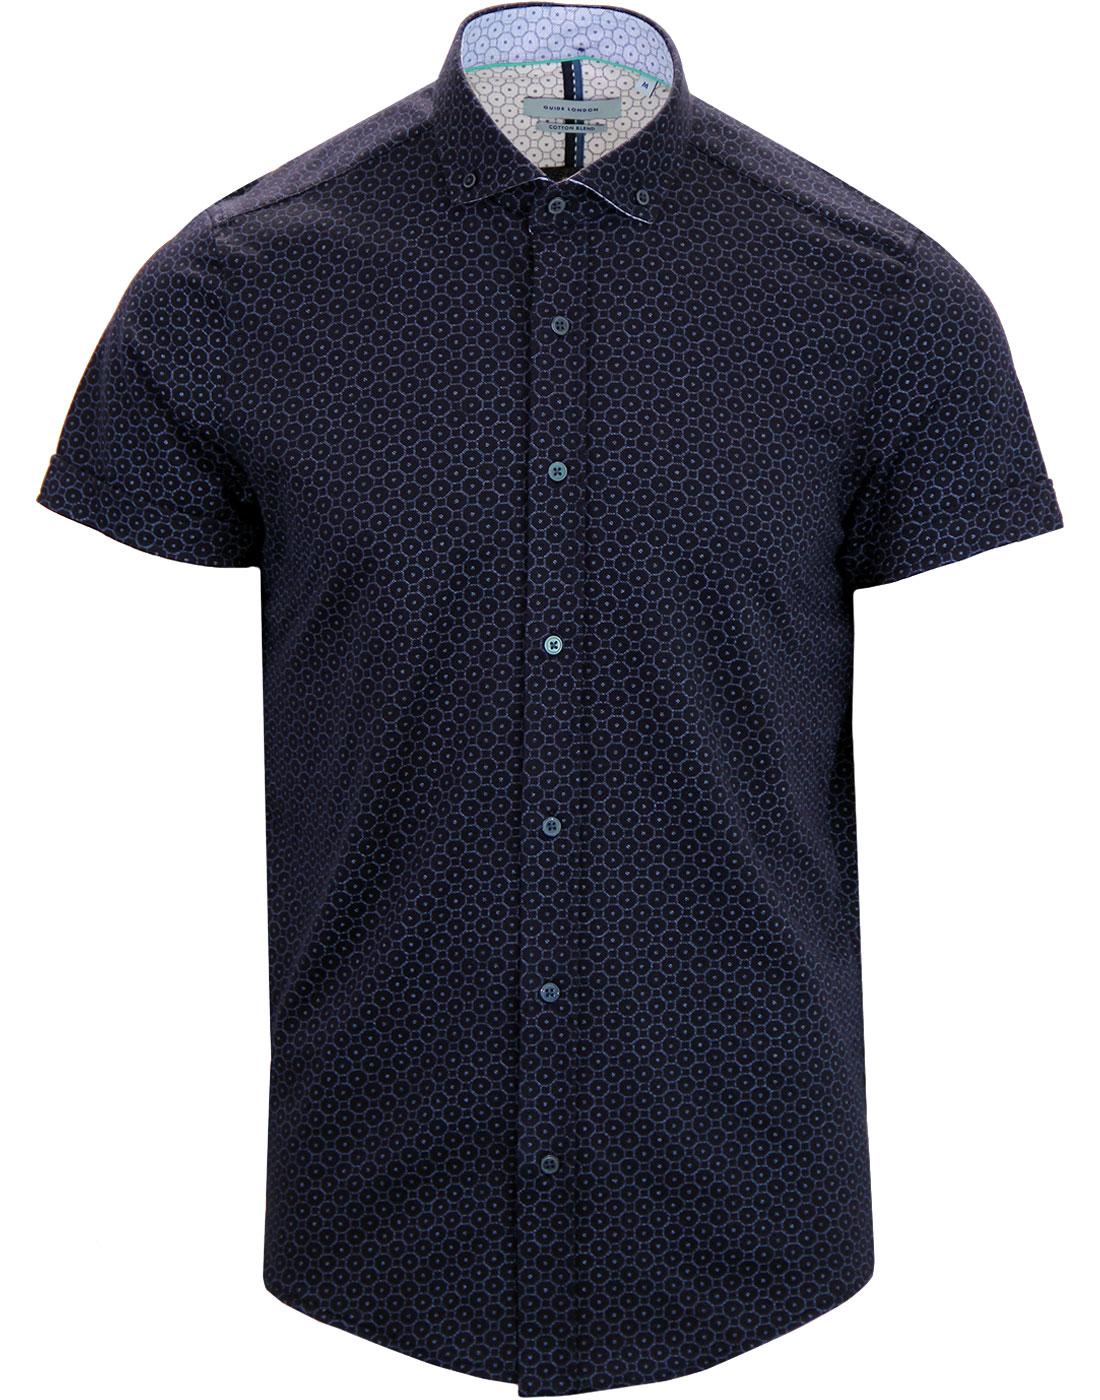 GUIDE LONDON Retro 60's Op Art Pique Shirt NAVY